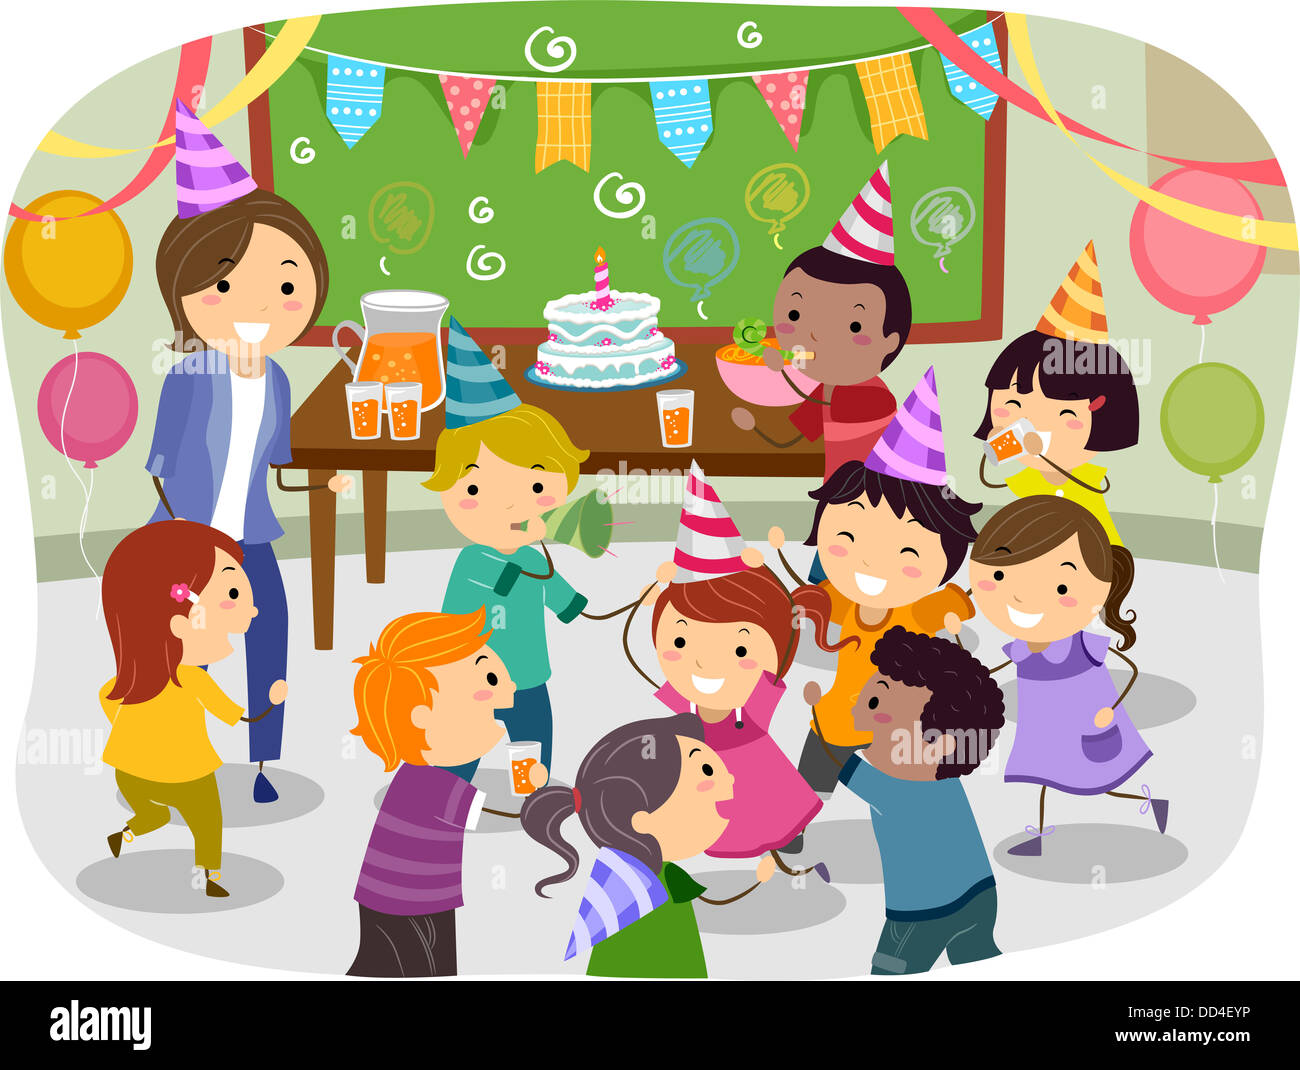 Illustration Of Stickman Kids Having A Birthday Party At